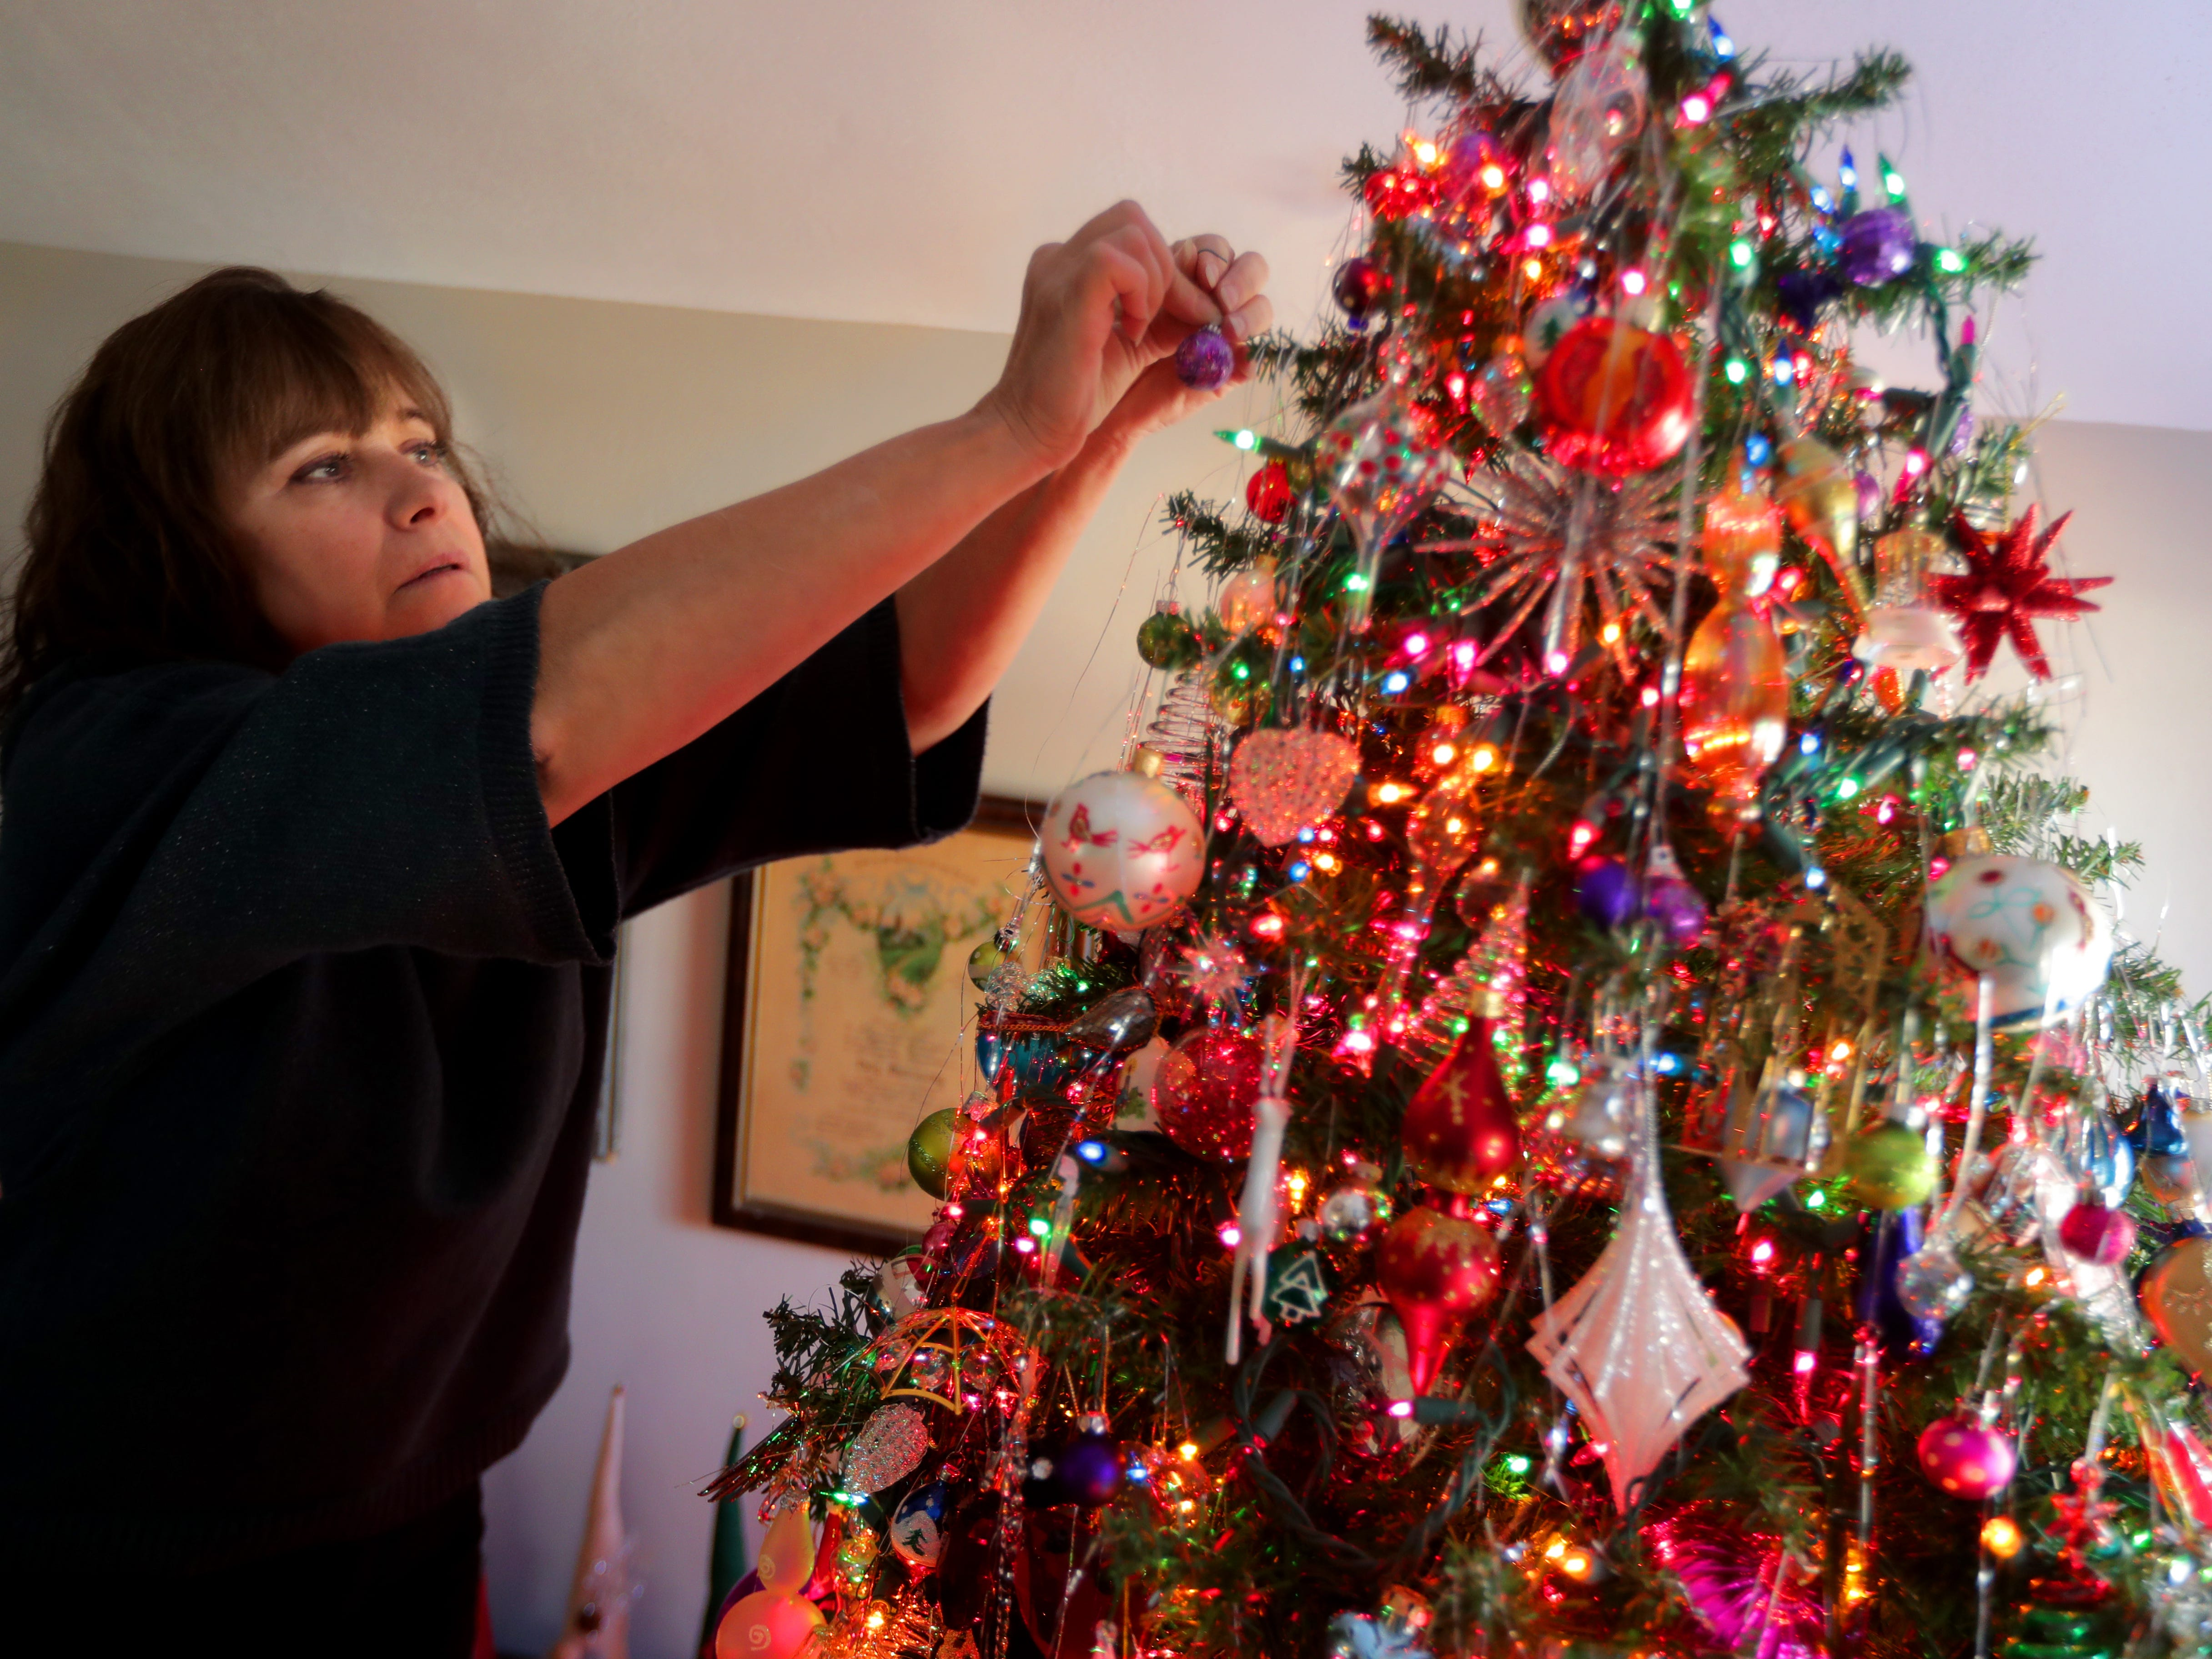 Kim Harrison hangs one more ornament onto her Christmas tree.